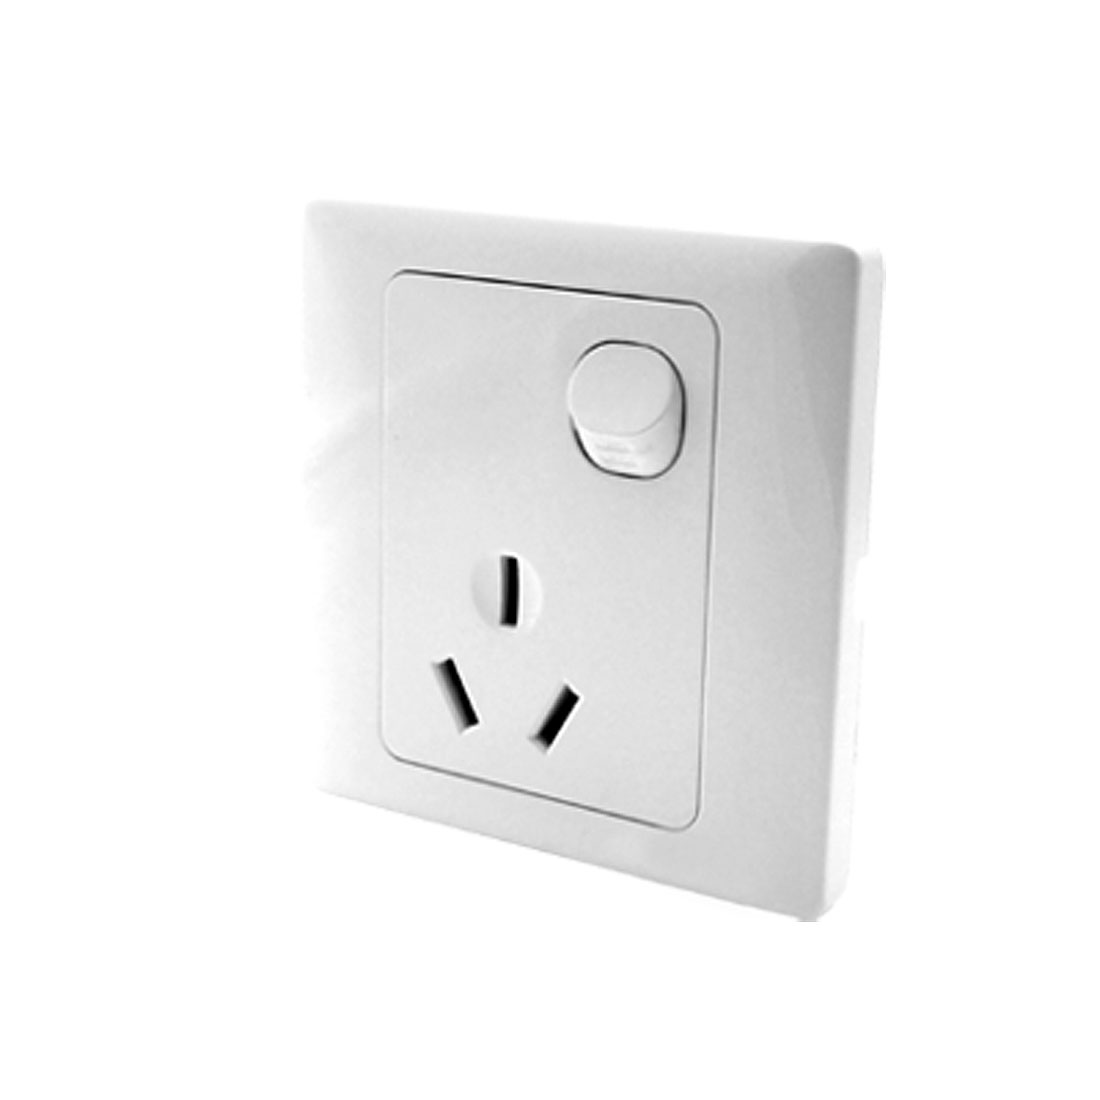 AC 250V 16A AU Outlet Socket 1 Gang Button Wall Plate Switch White